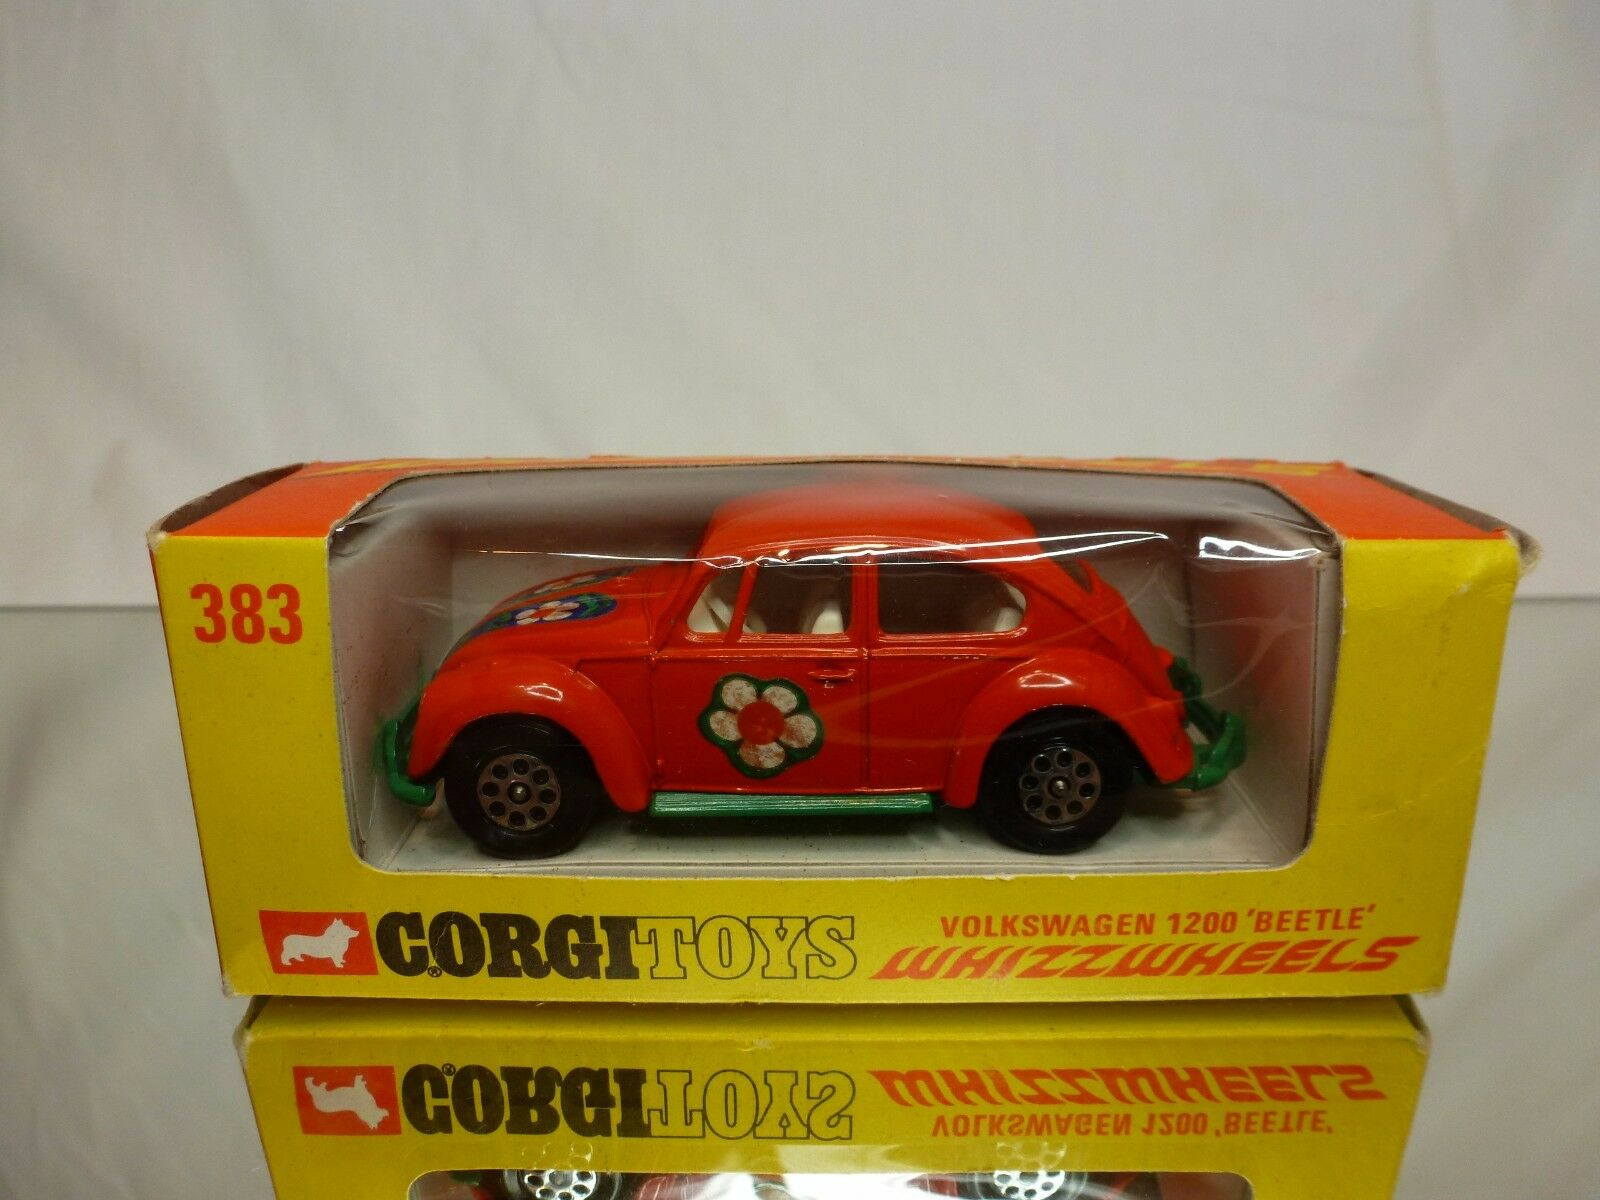 CORGI TOYS 383 VW VOLKSWAGEN 1200 BEETLE - naranja 1 43 RARE - EXCELLENT IN BOX